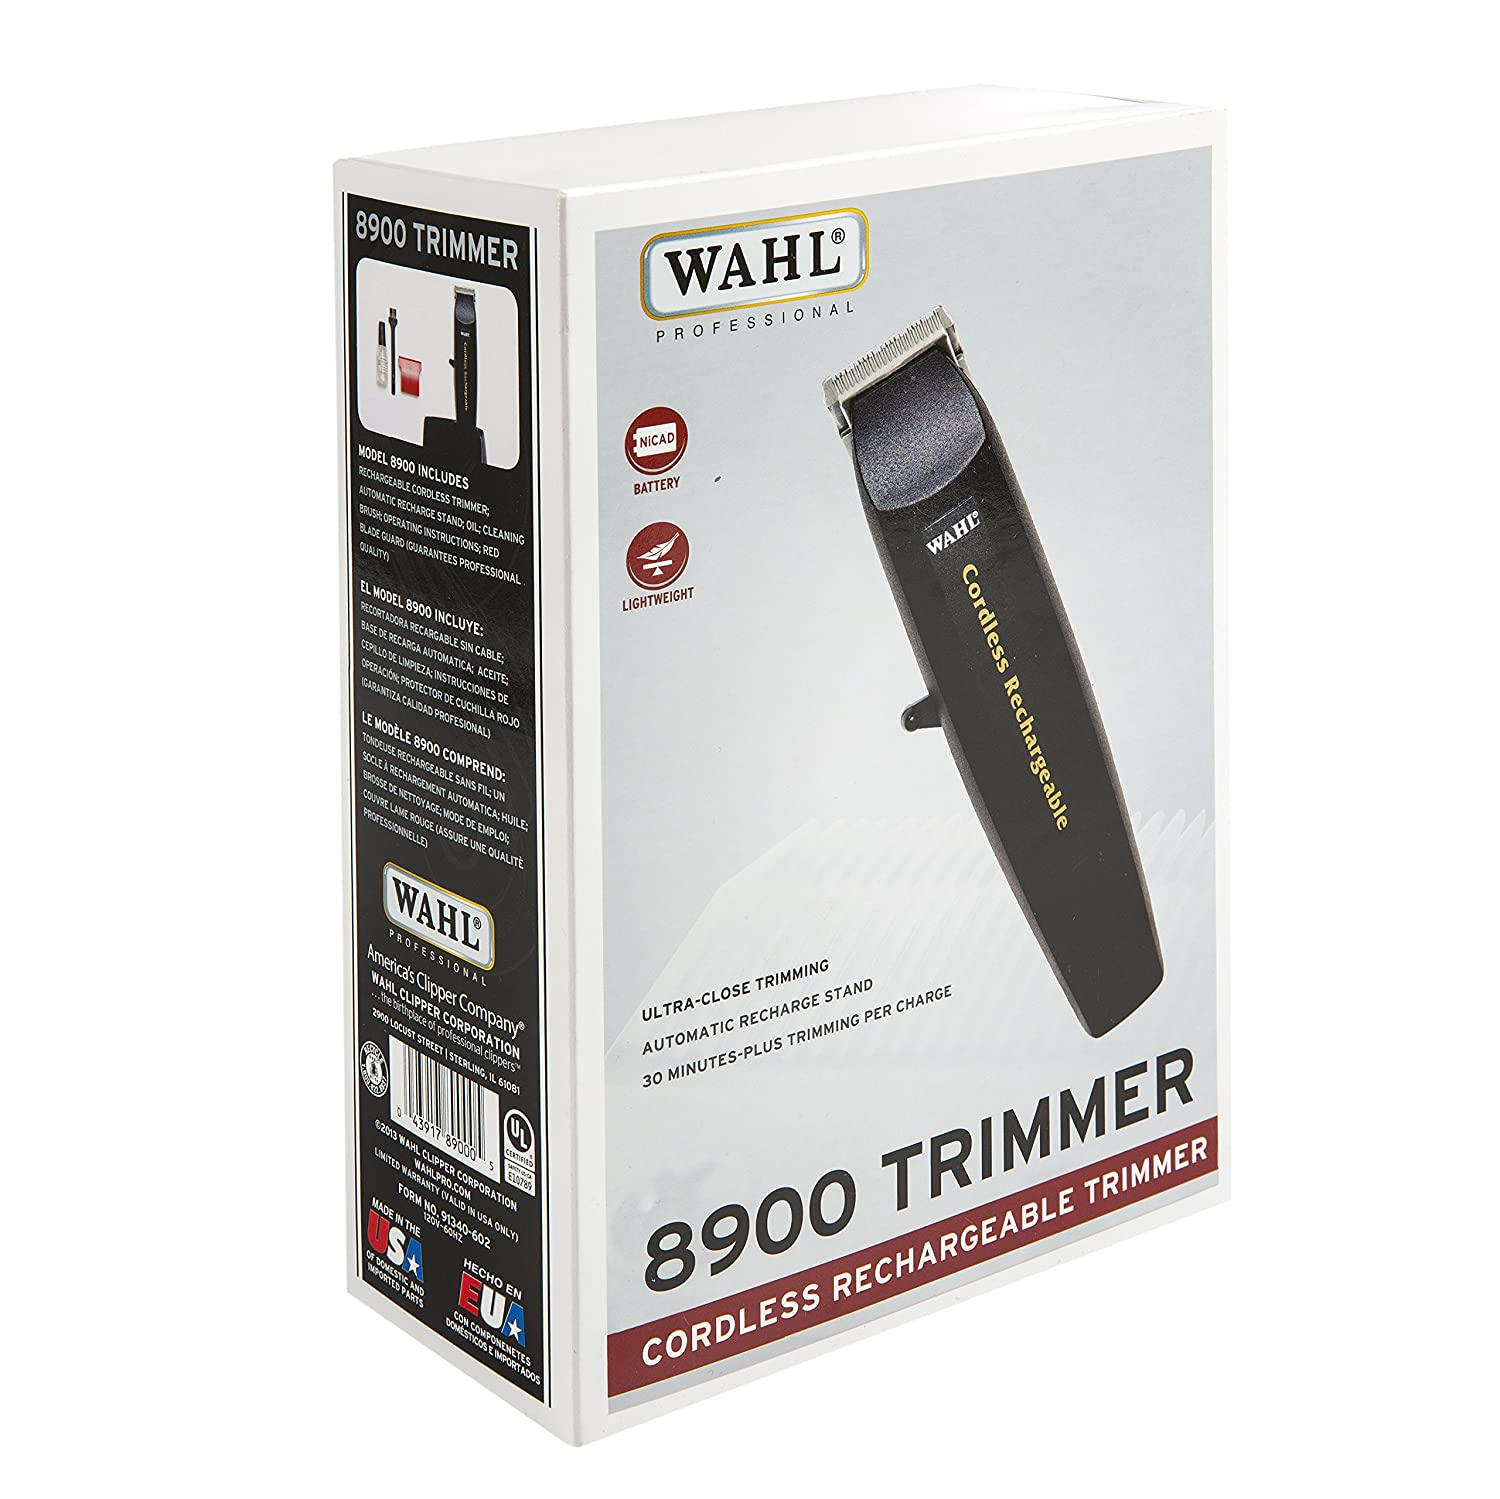 Wahl Professional 8900 Trimmer Cordless Rechargeable Trimmer